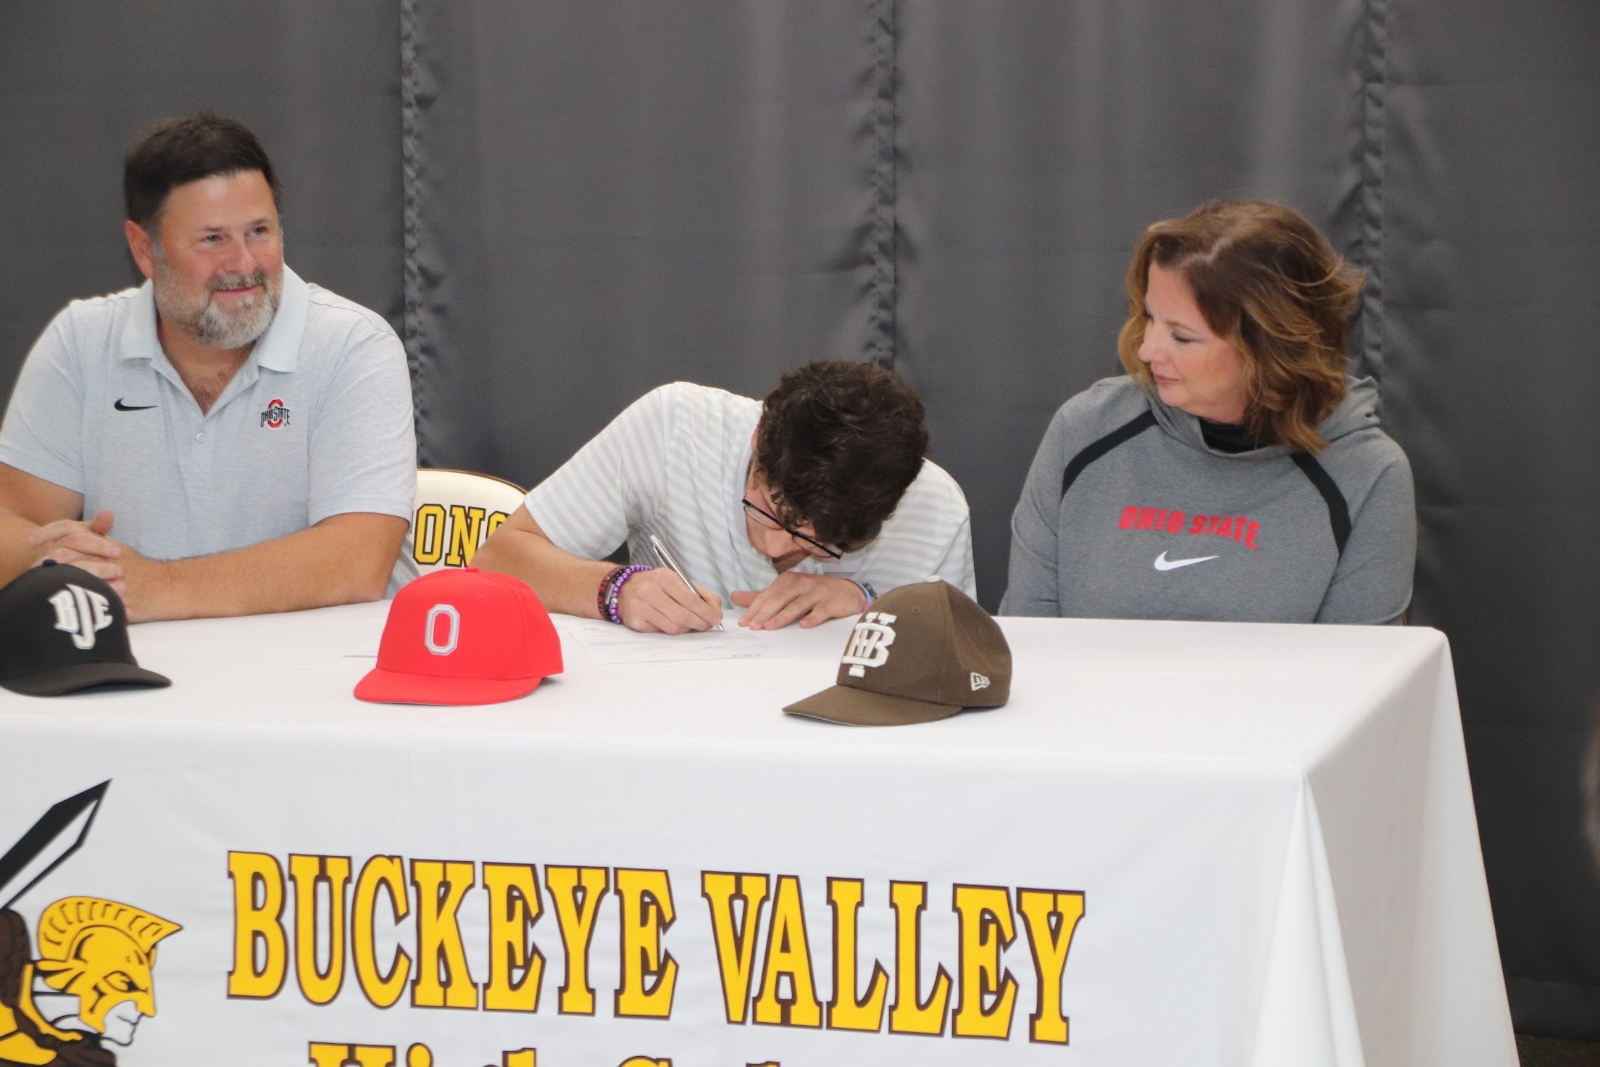 Evan Ulrich – Buckeye Valley to The Ohio State University